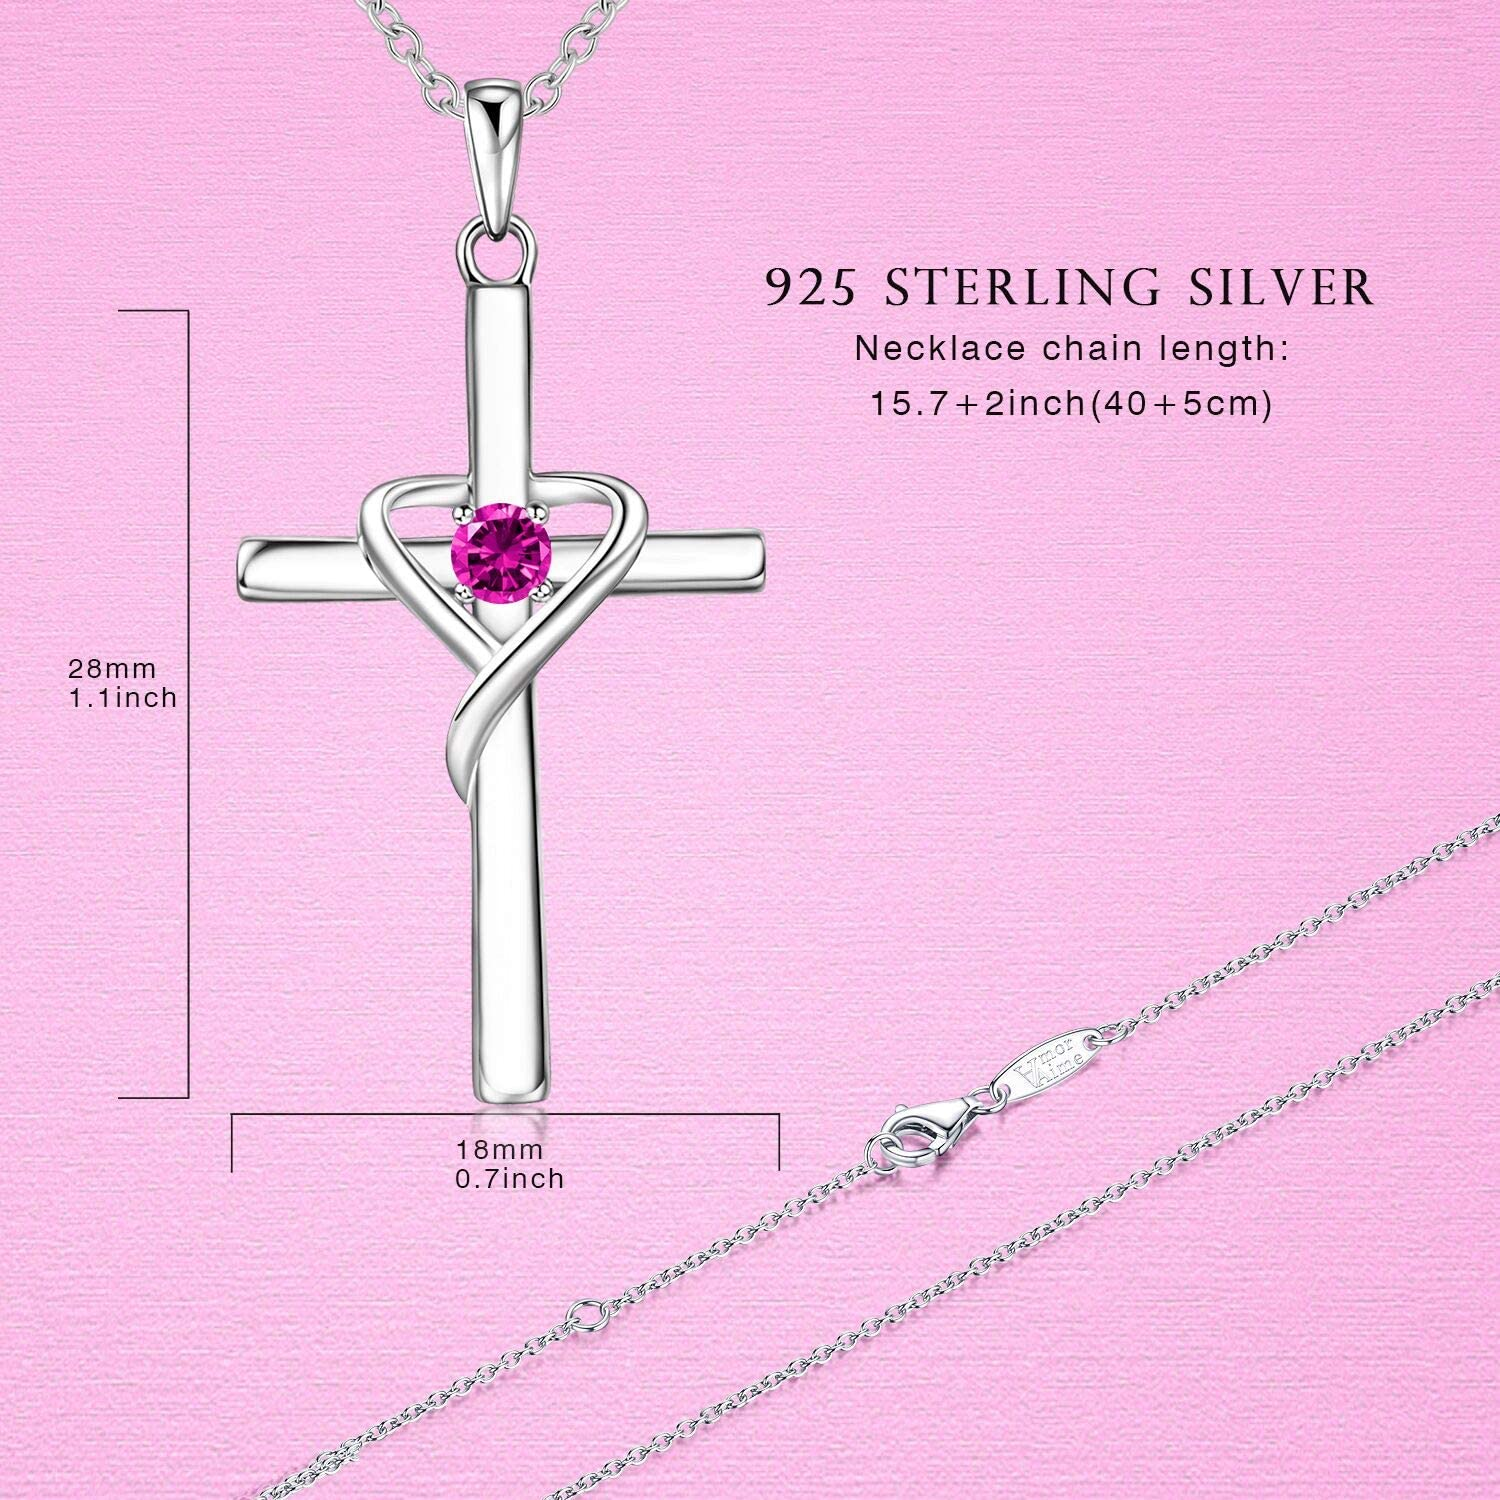 AmorAime 925 Sterling Silver Cross Necklace for Women Birthstone Necklace for Girls Birthstone Jewelry Gifts for Christmas,Birthday or Anniversary